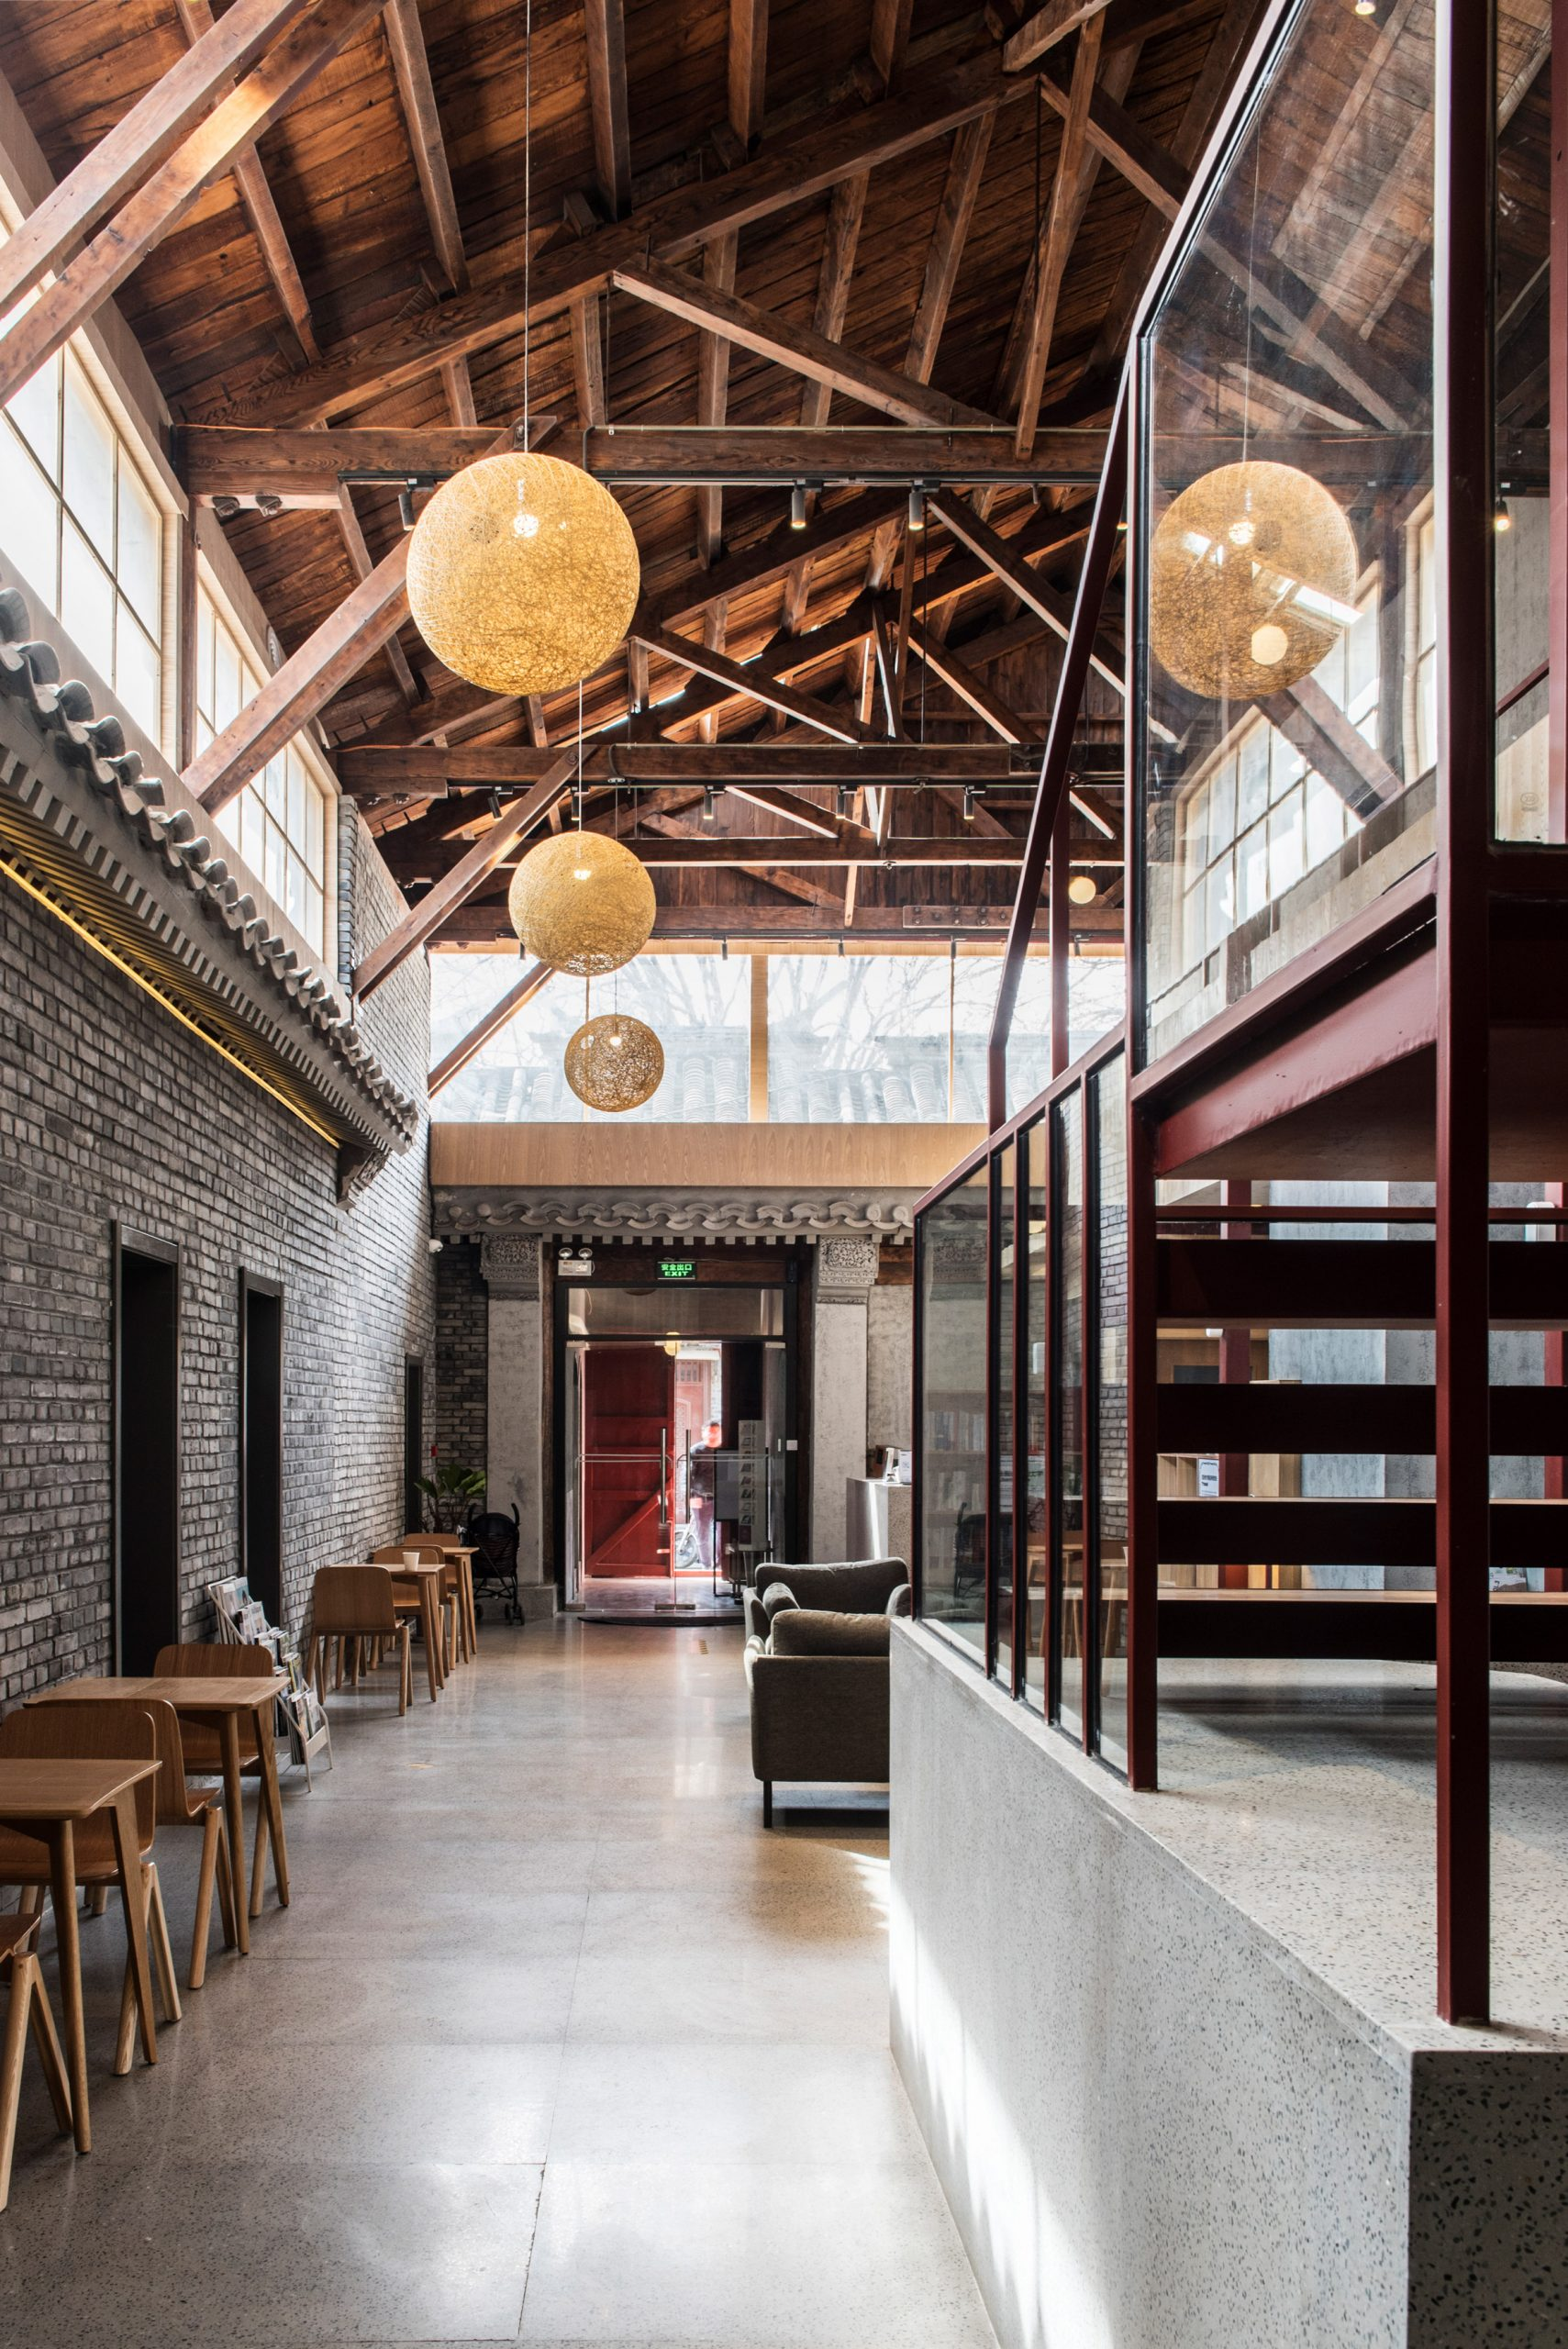 Interior courtyard with wooden roof and clerestory windows windows in Well Well Well Hotel